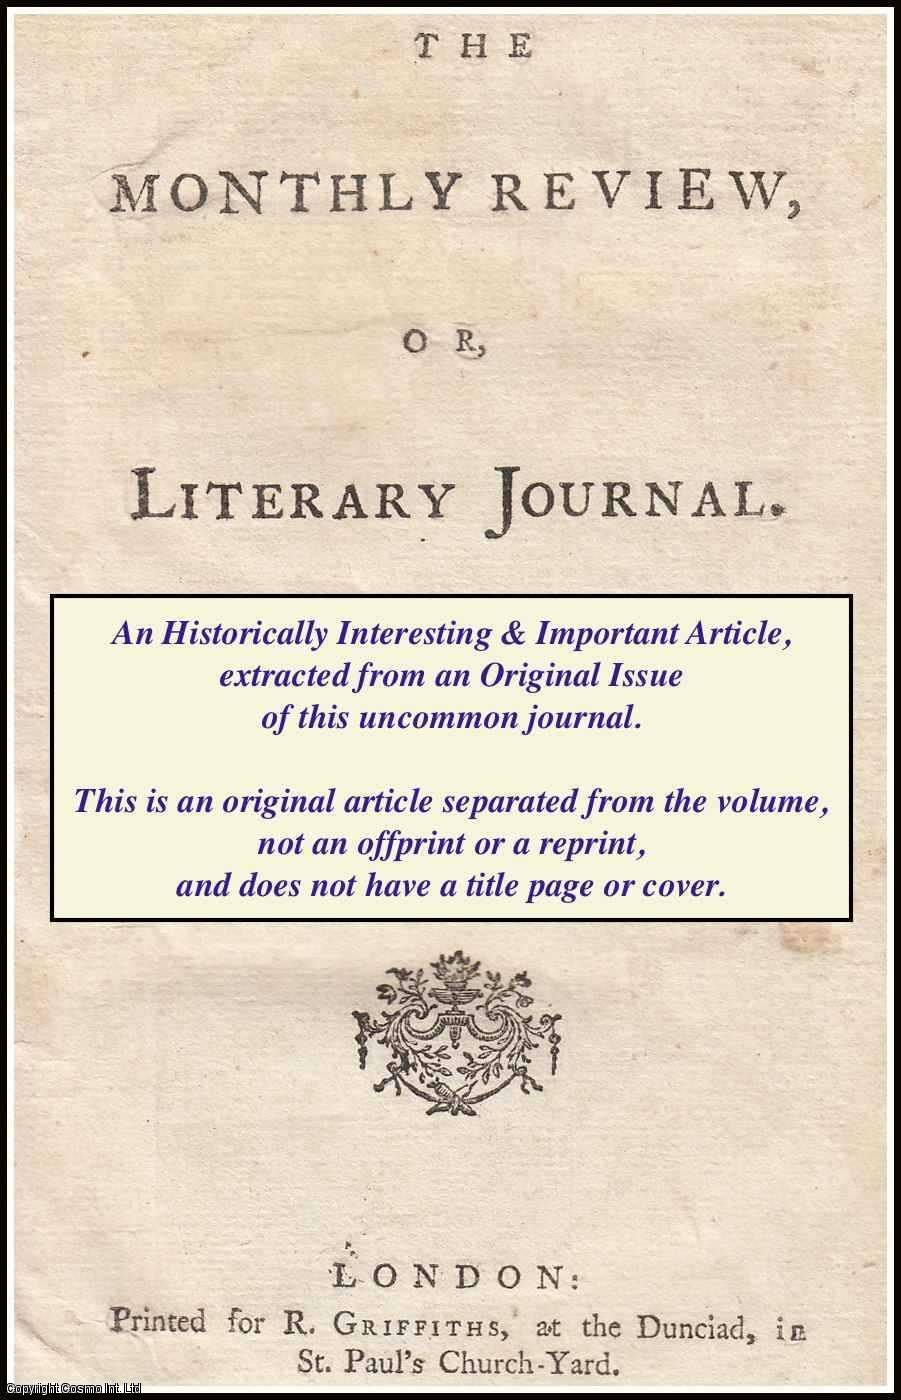 --- - Biographical, Literary, and Political Anecdotes, of Several of The Most Eminent Persons of The Present Age. Never Before Printed. A rare original article from the Monthly Review, 1798.